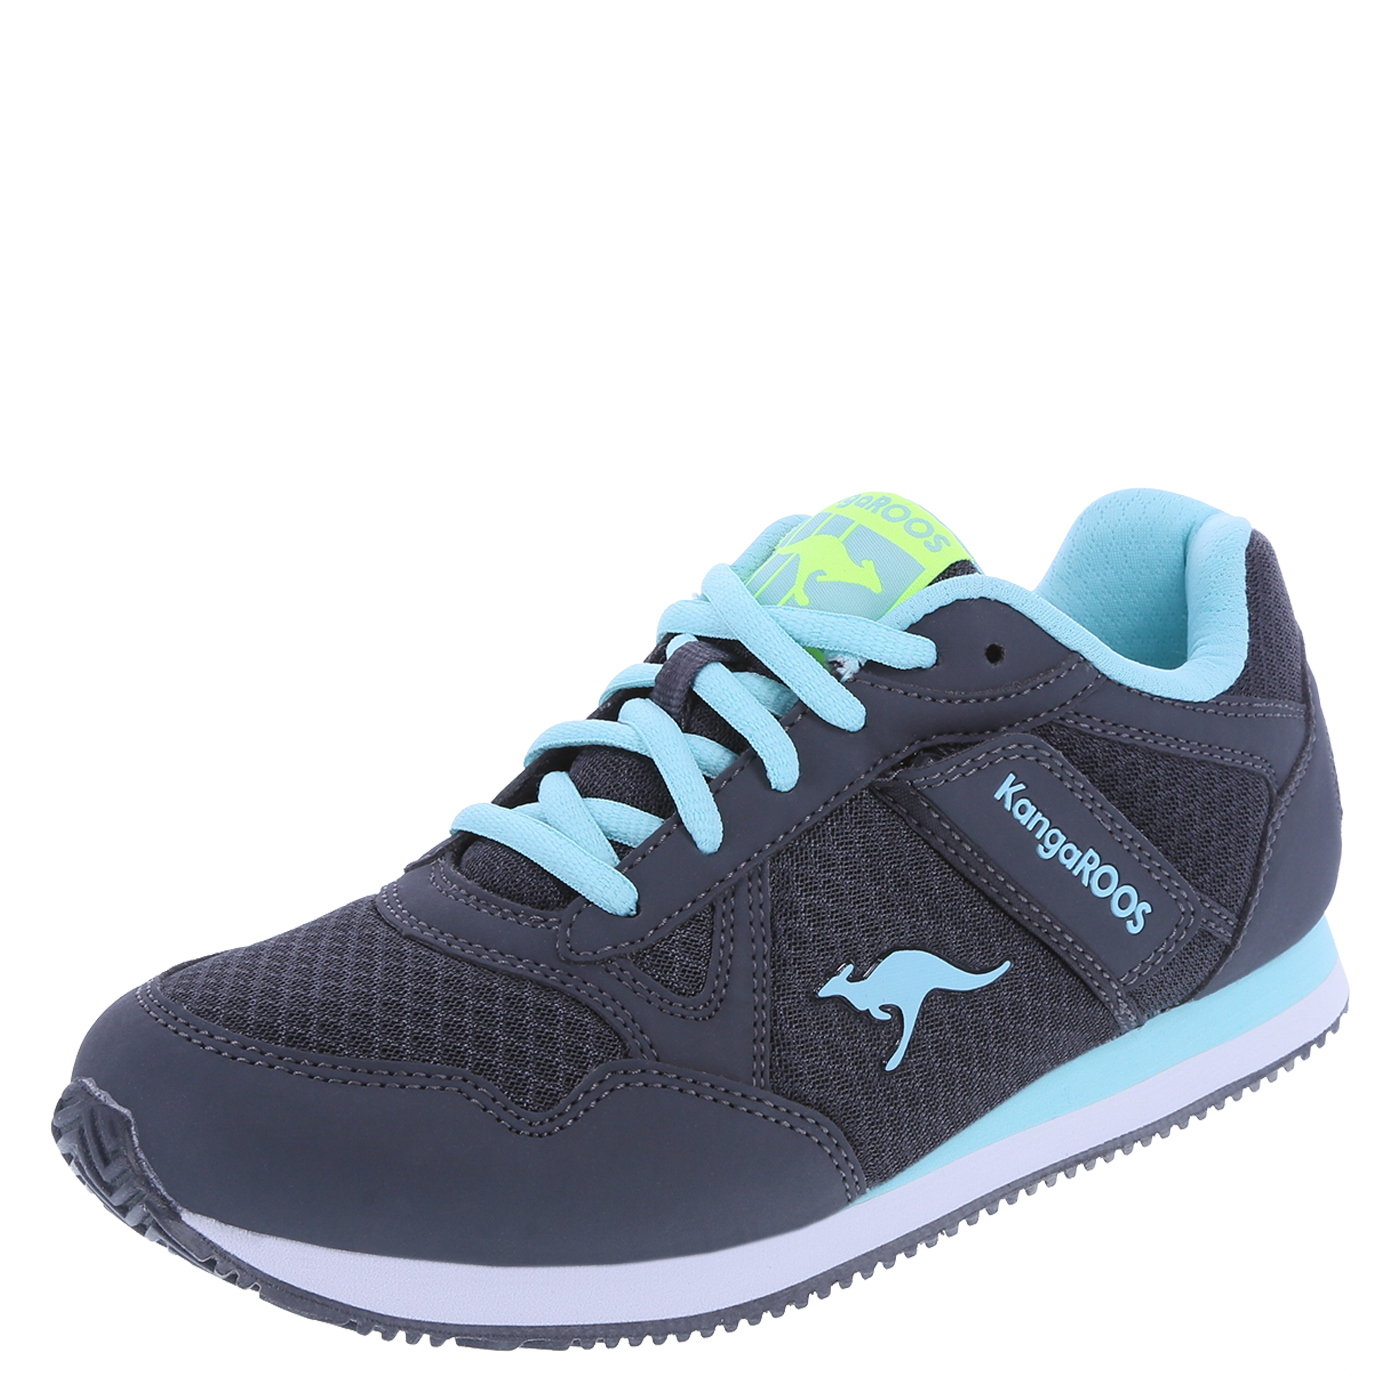 kangaroo-shaker-jogger-women-running-shoes